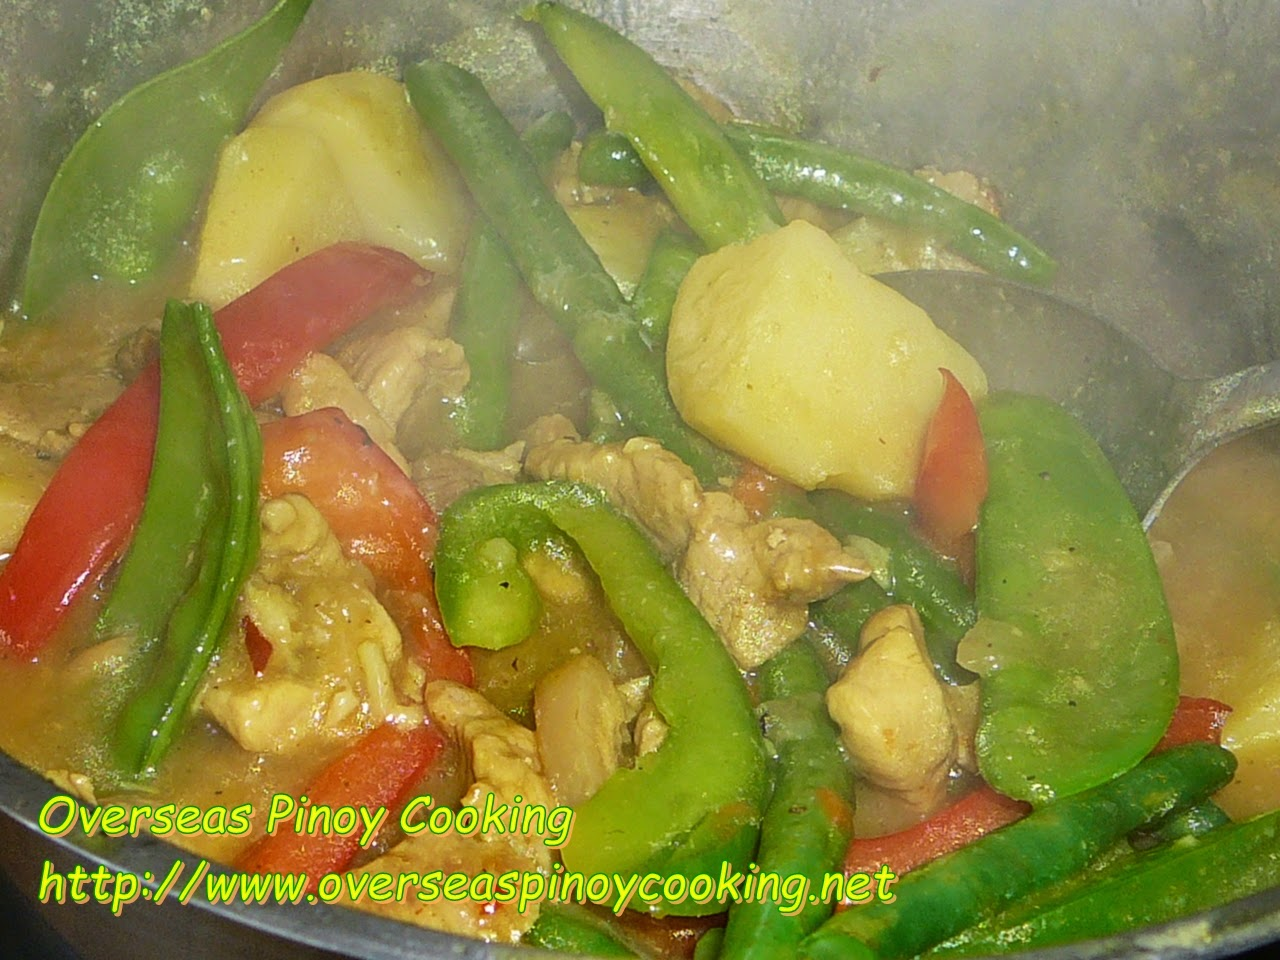 Pinoy Pork Curry - Cooking Procedure